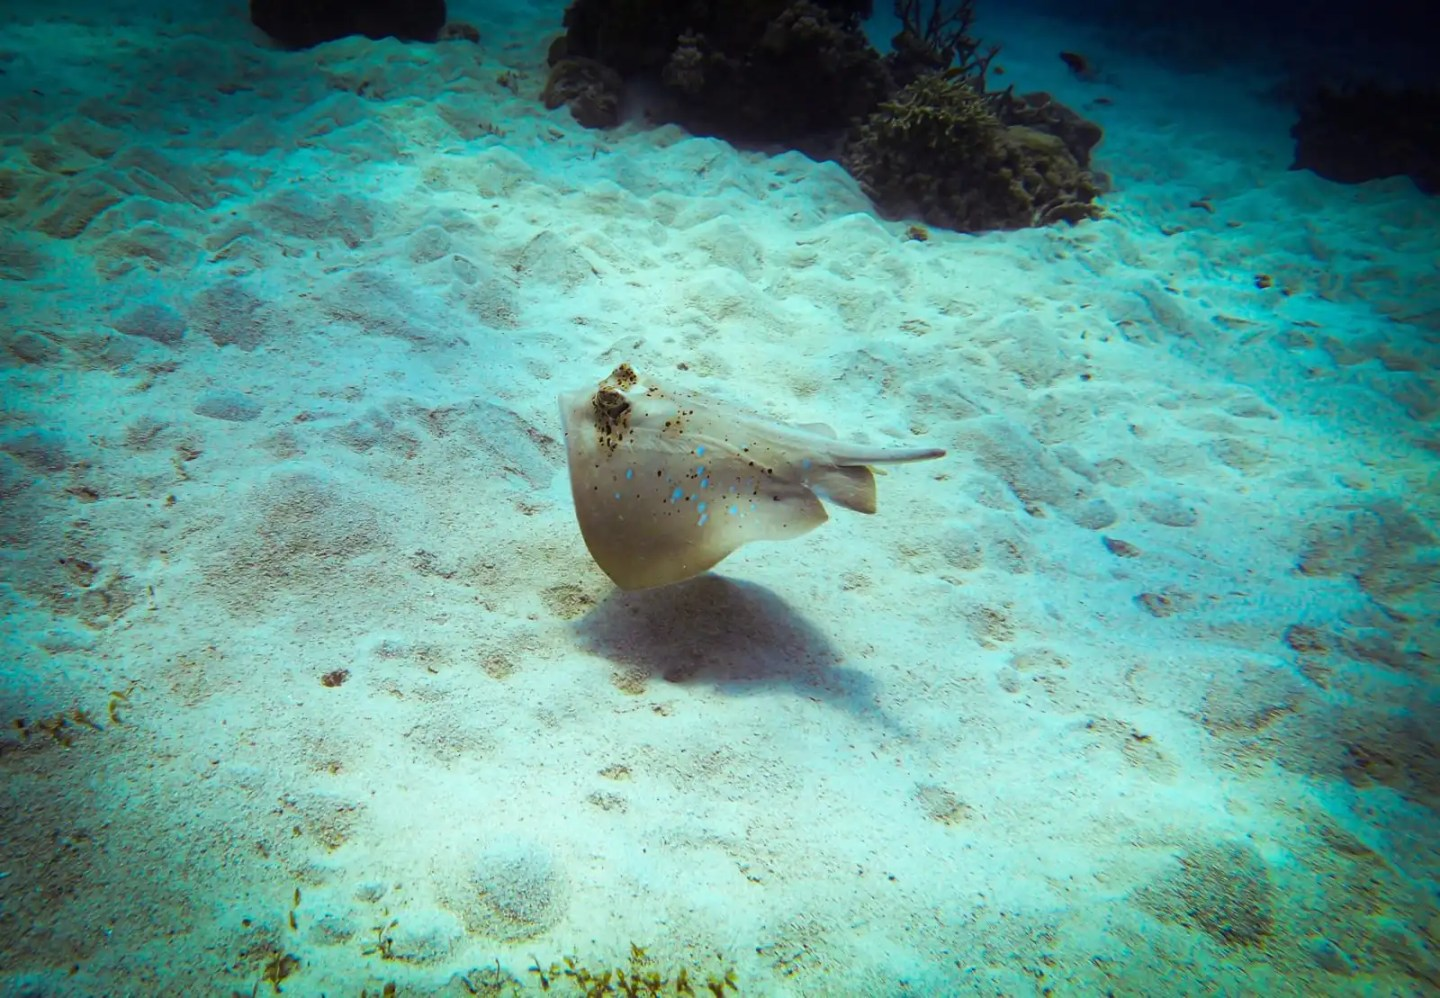 Cairns itinerary - Blue spotted ray